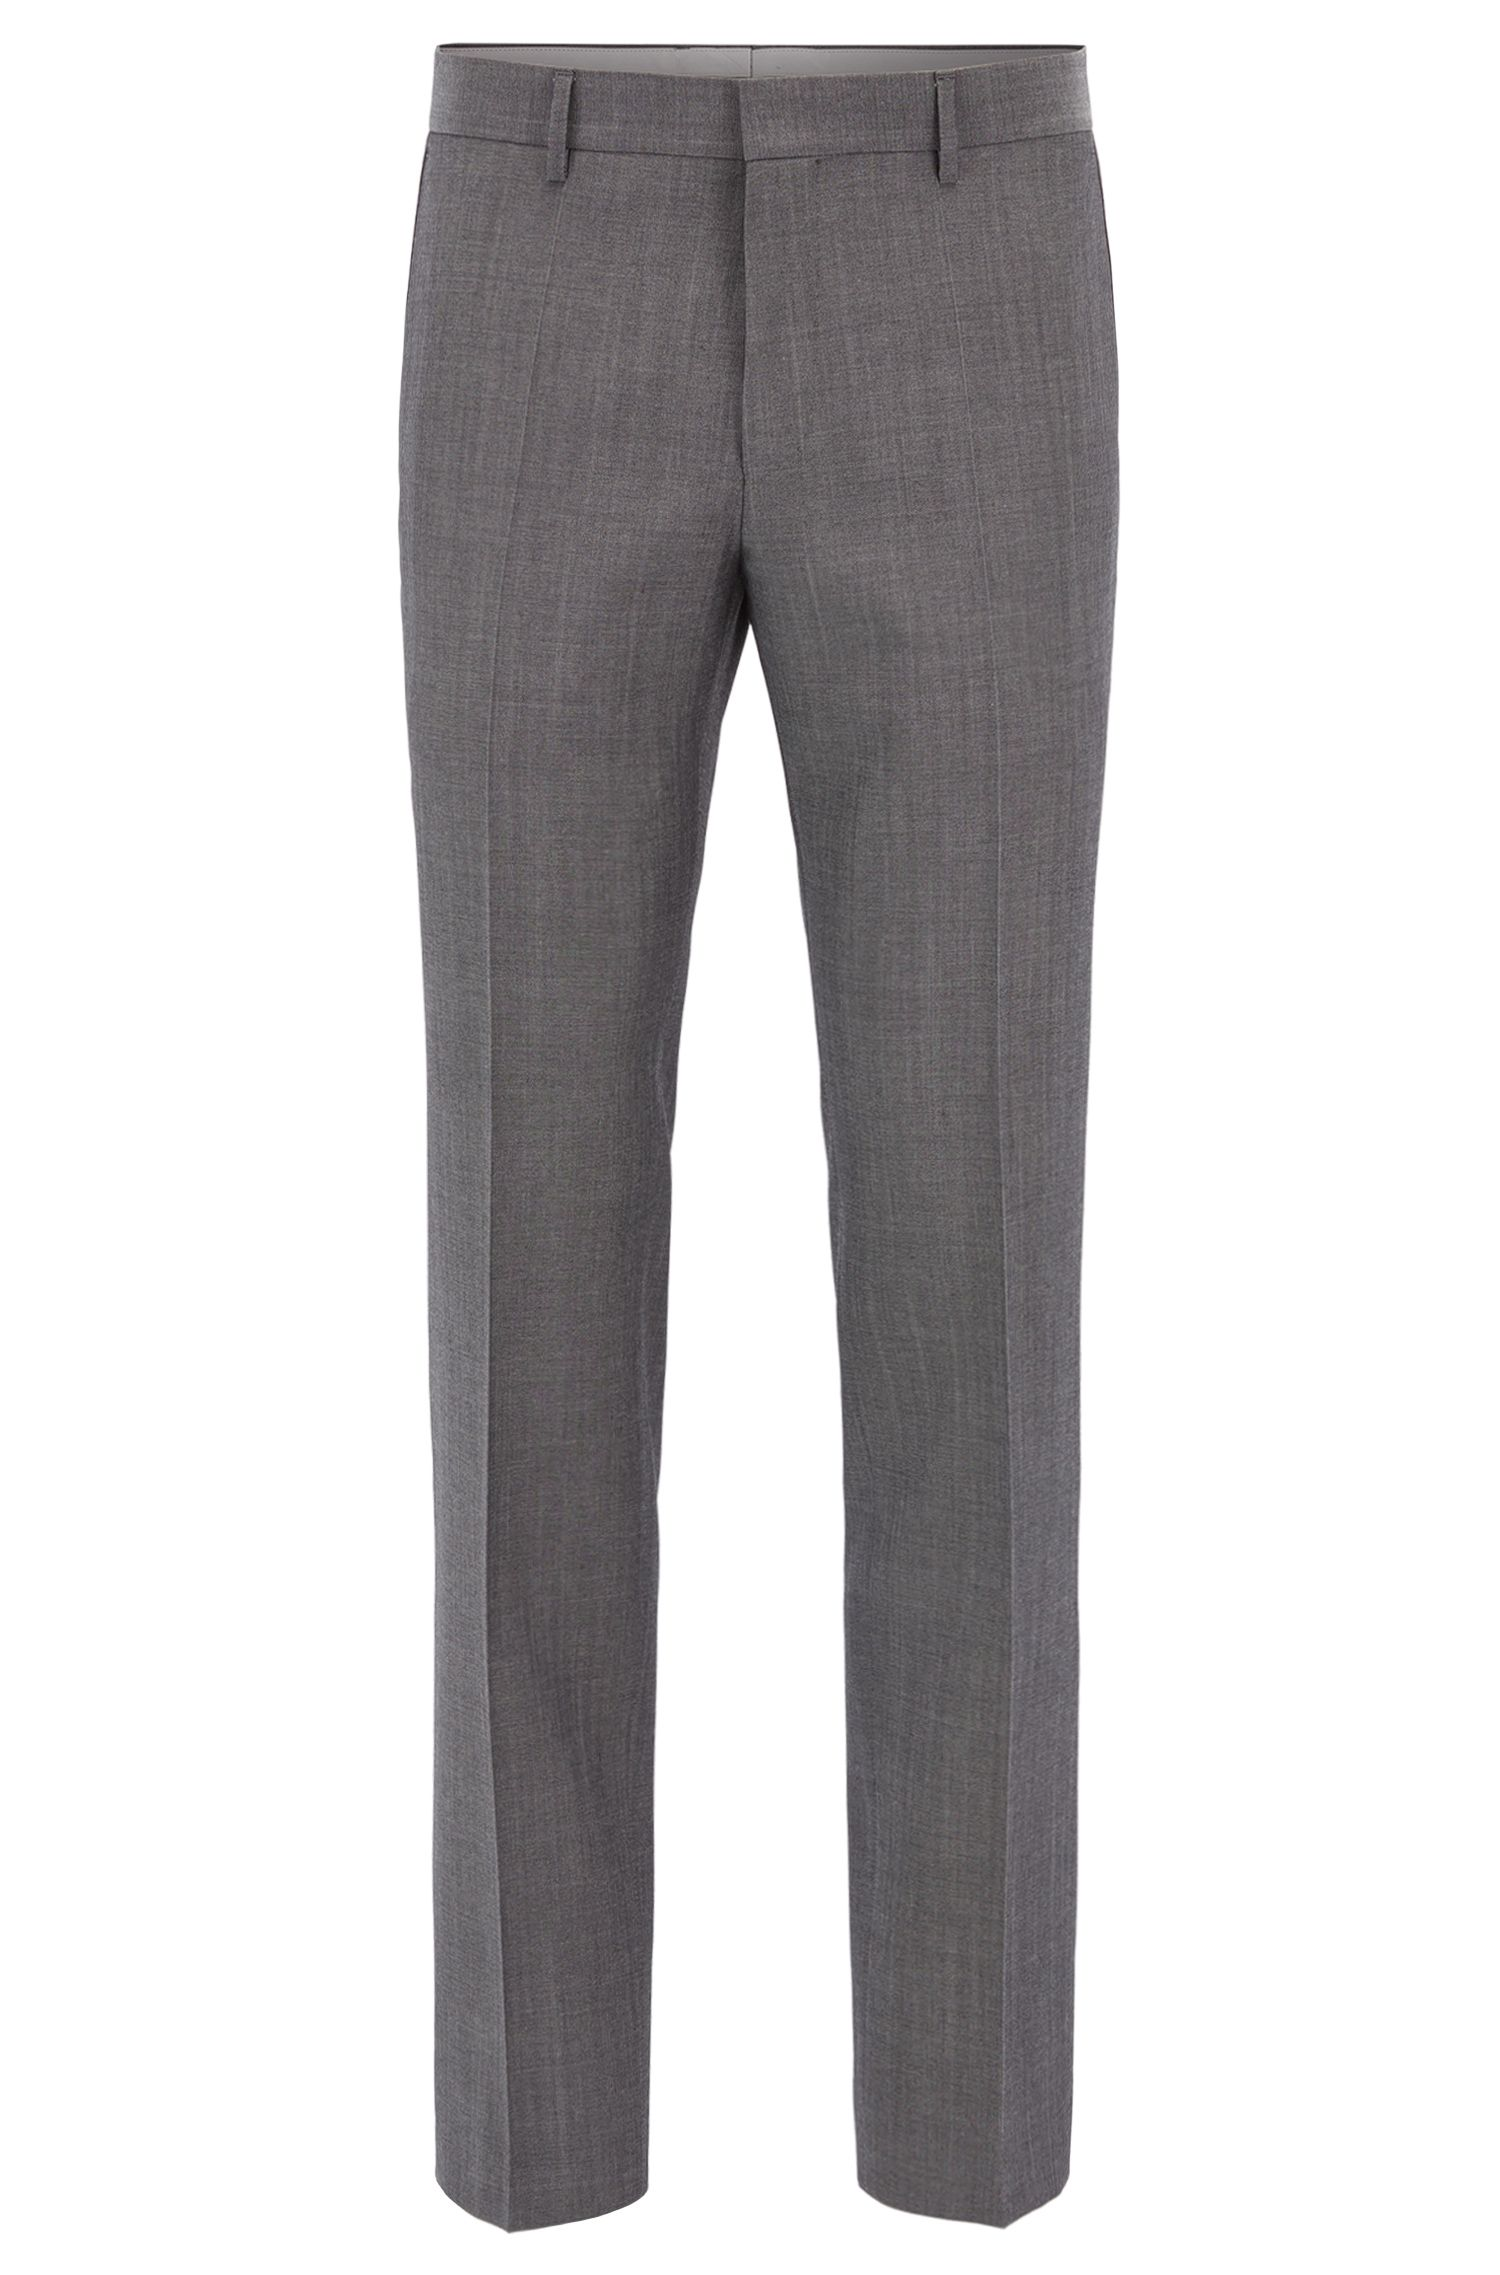 Heather Virgin Wool Dress Pant, Slim Fit | Giro